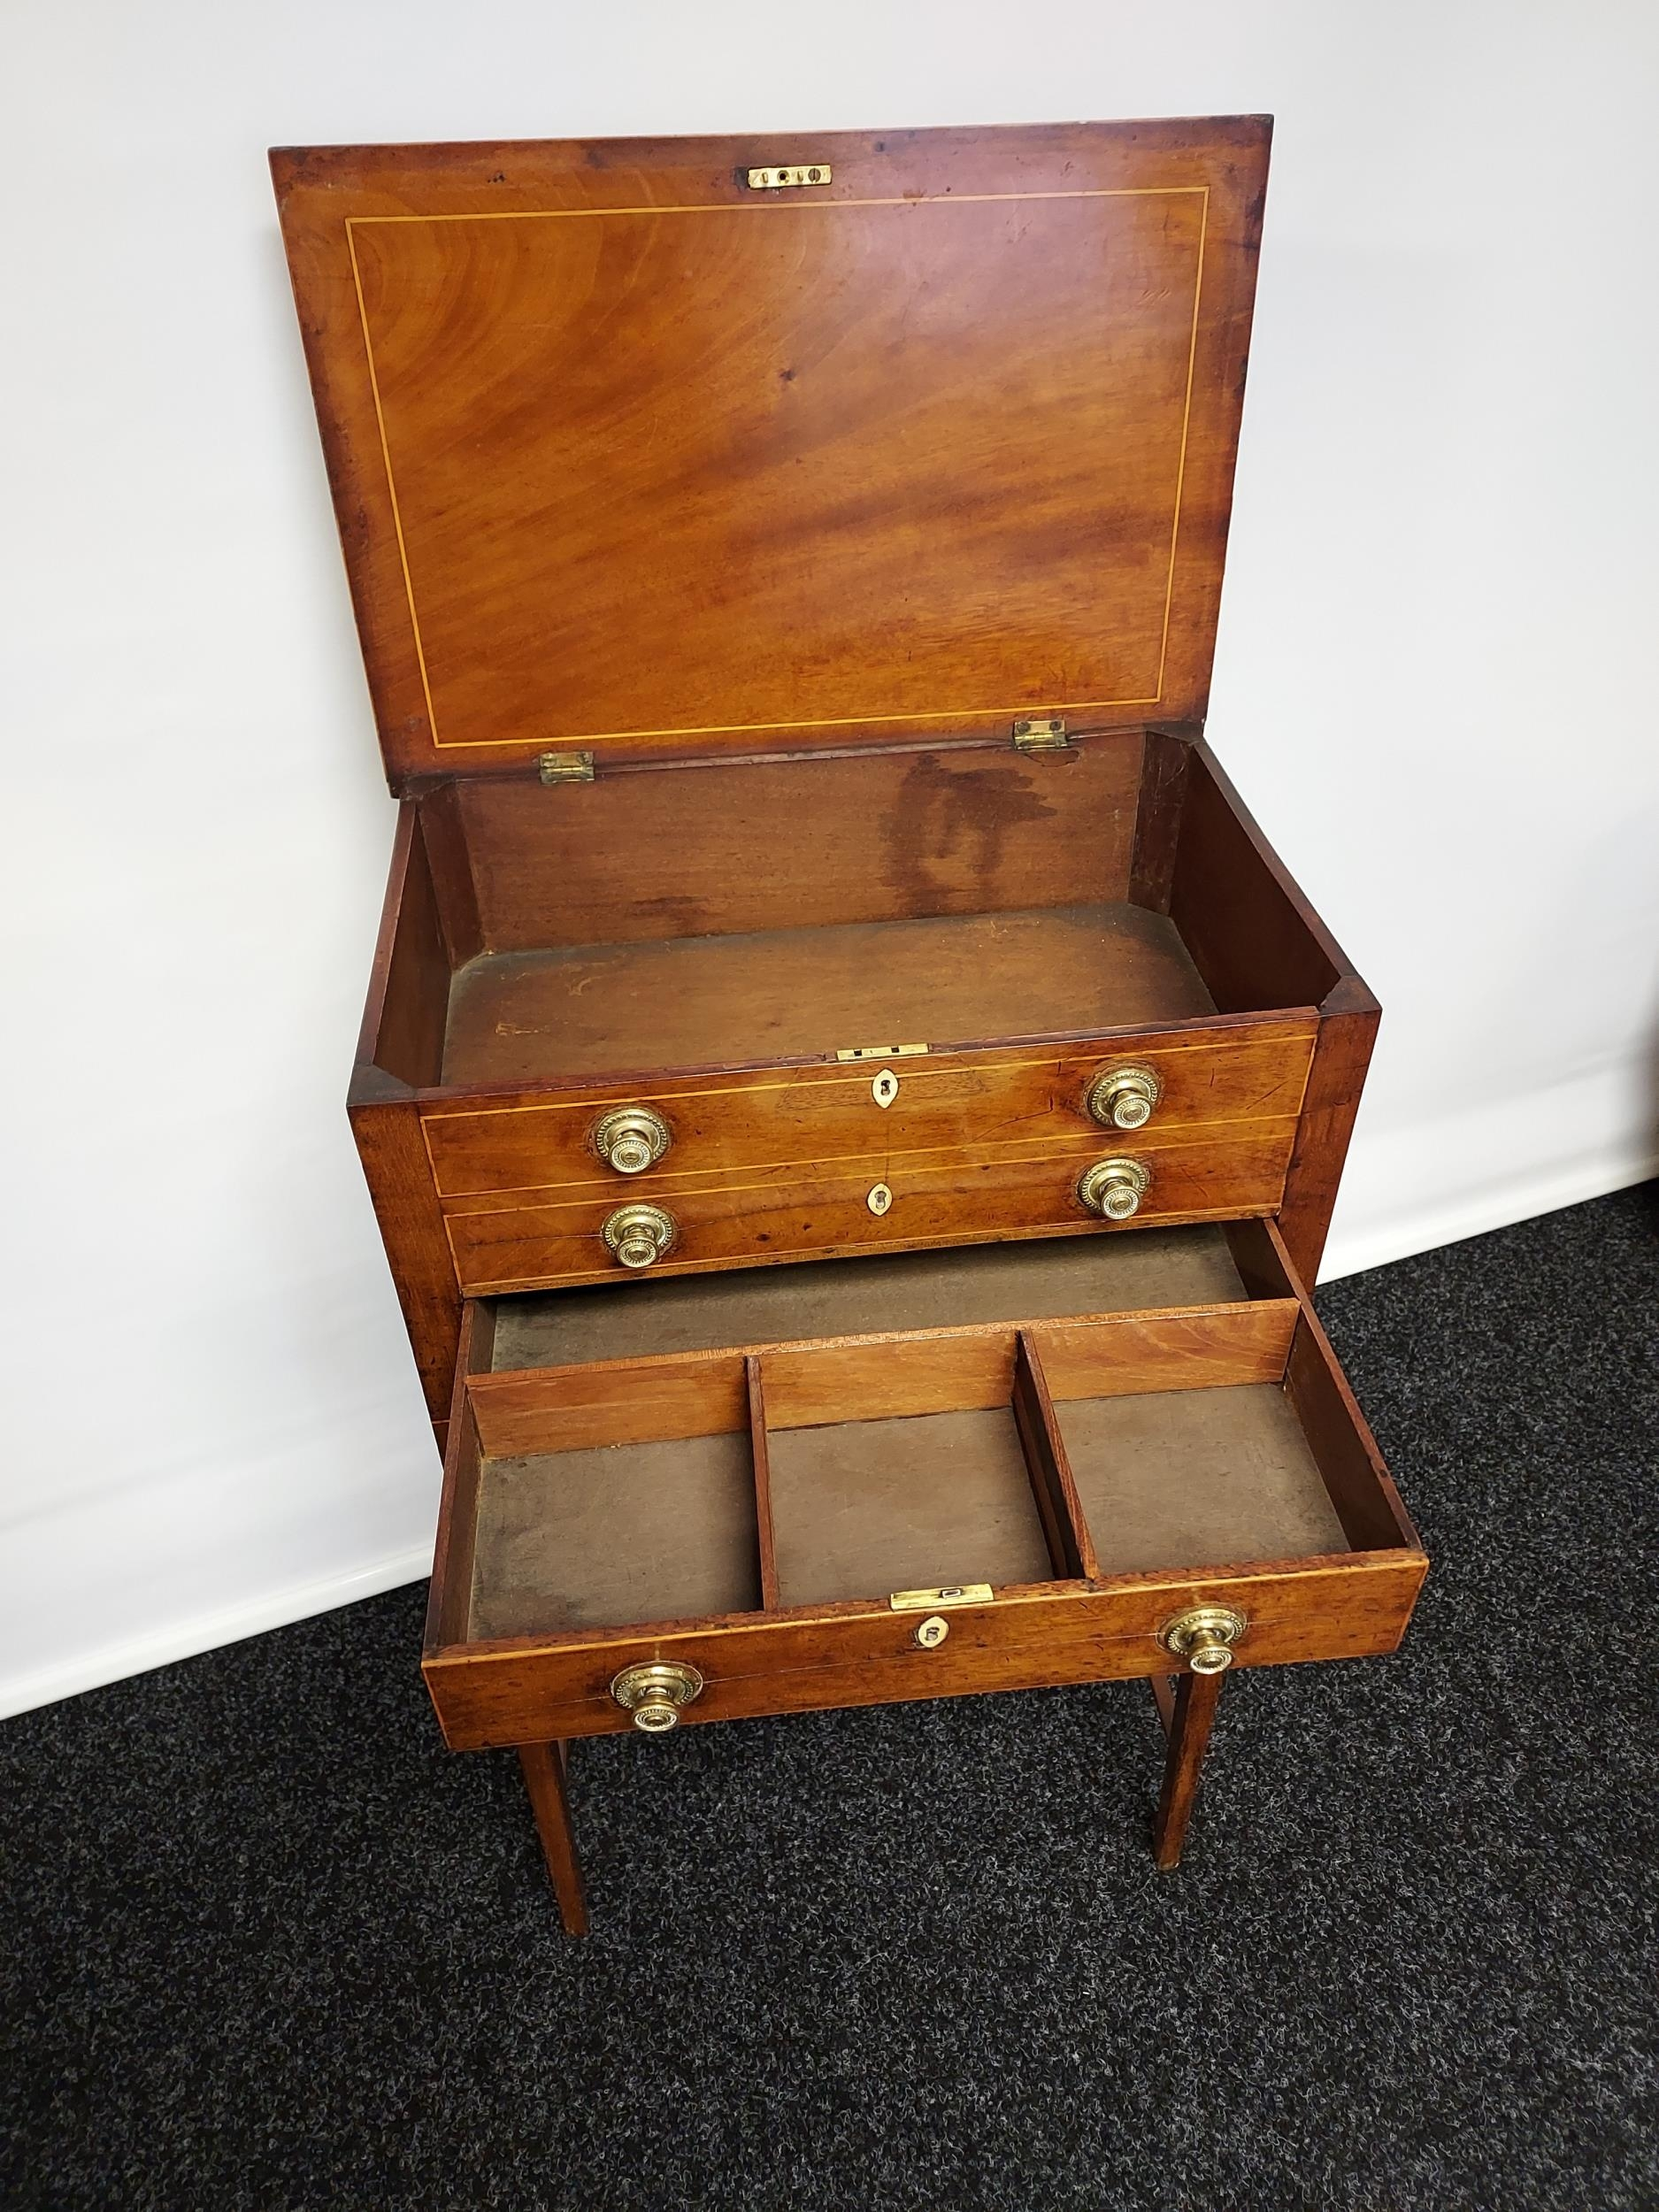 Georgian mahogany lift top console table, one centre drawer under two false drawers, raised on - Image 3 of 7